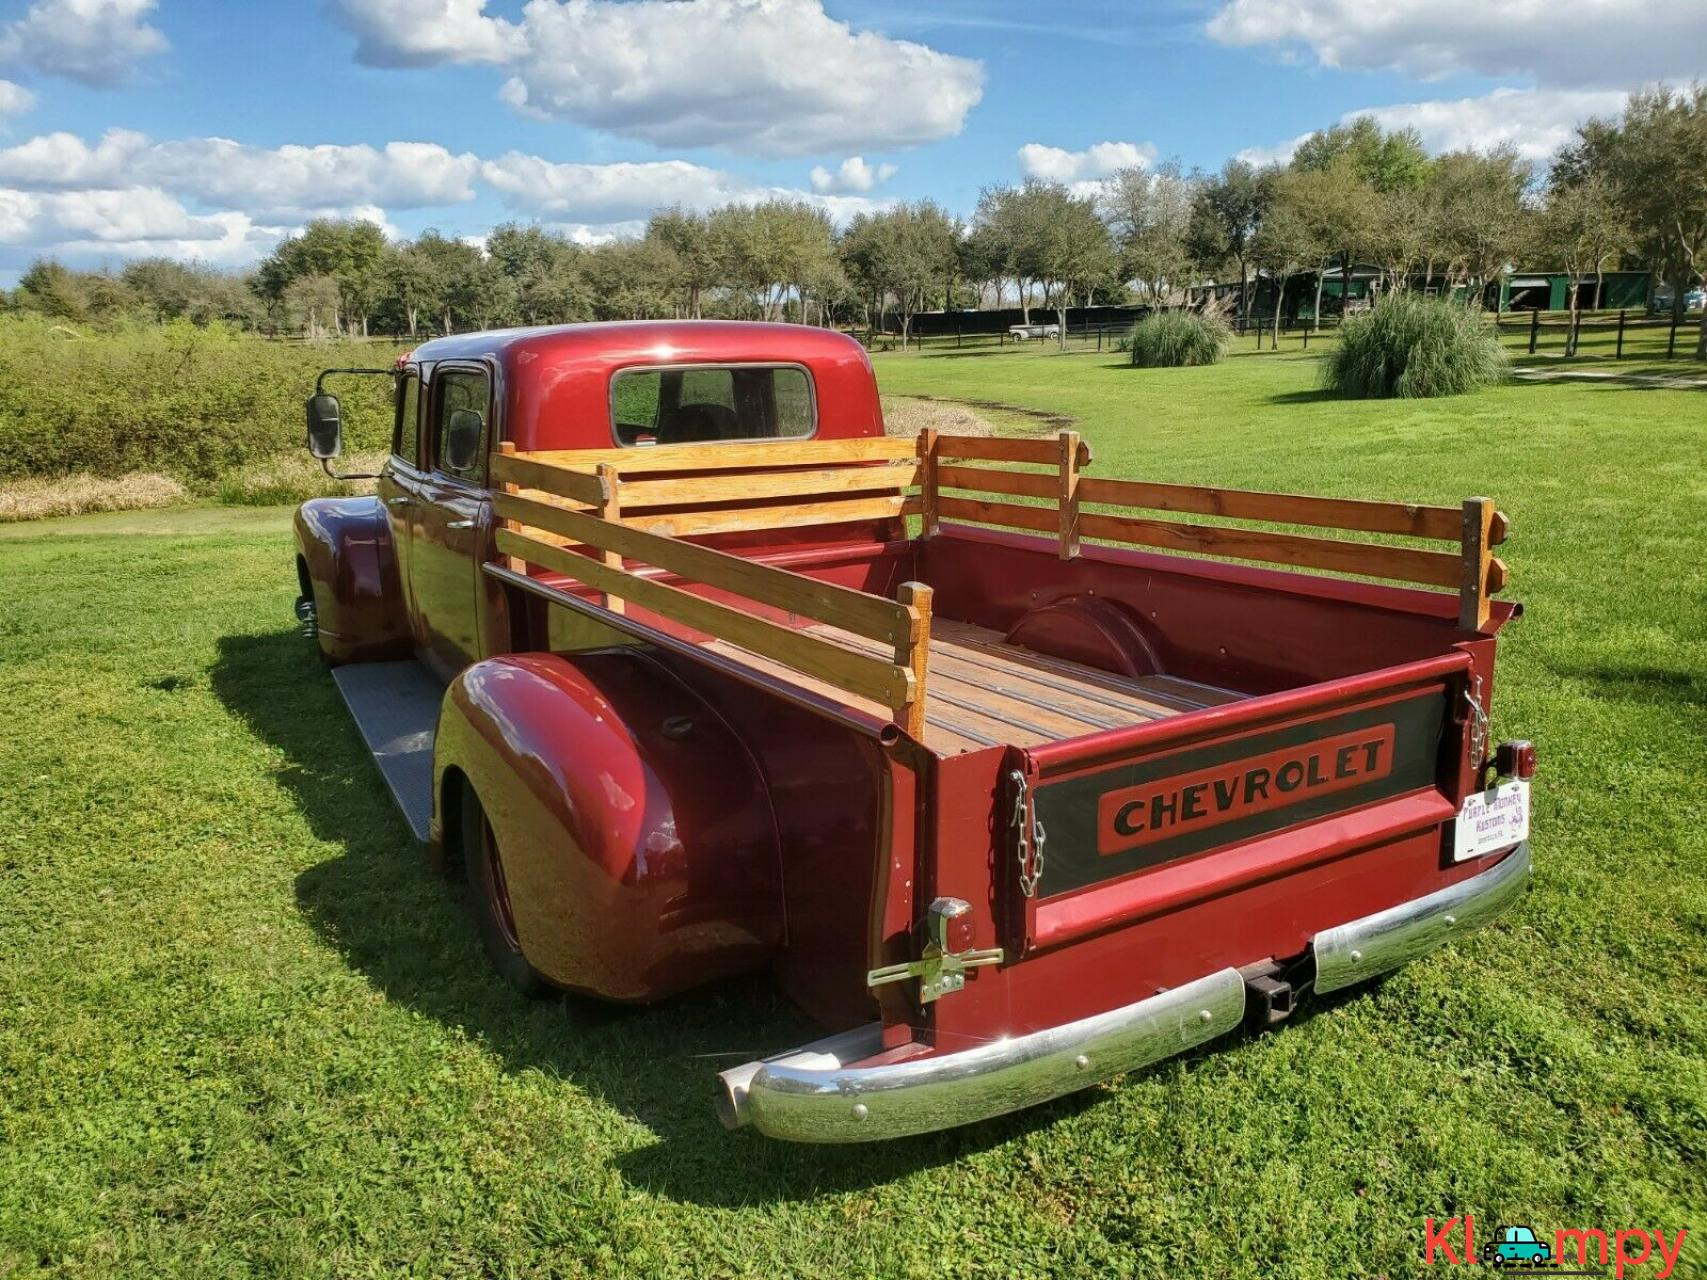 1949 Chevrolet Other Crewcab Diesel Dually - 6/14